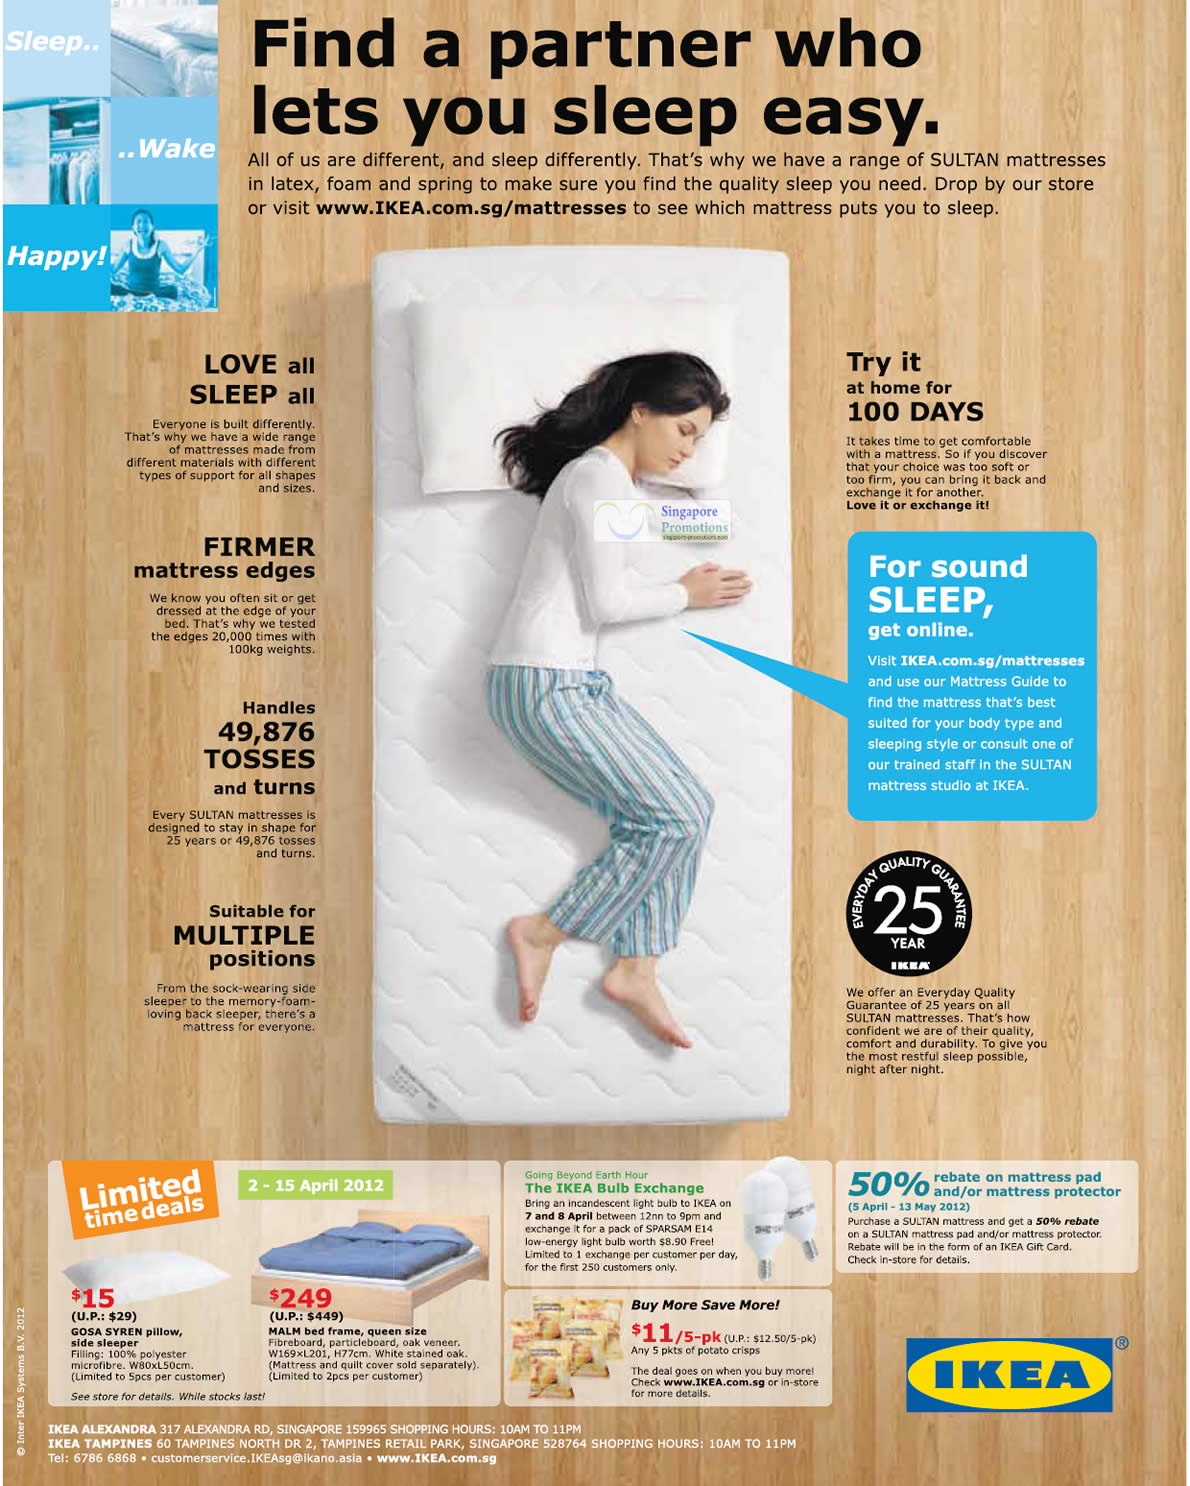 5 Apr Limited Time Deals, 50 Percent Off Mattress Pad Or Protector